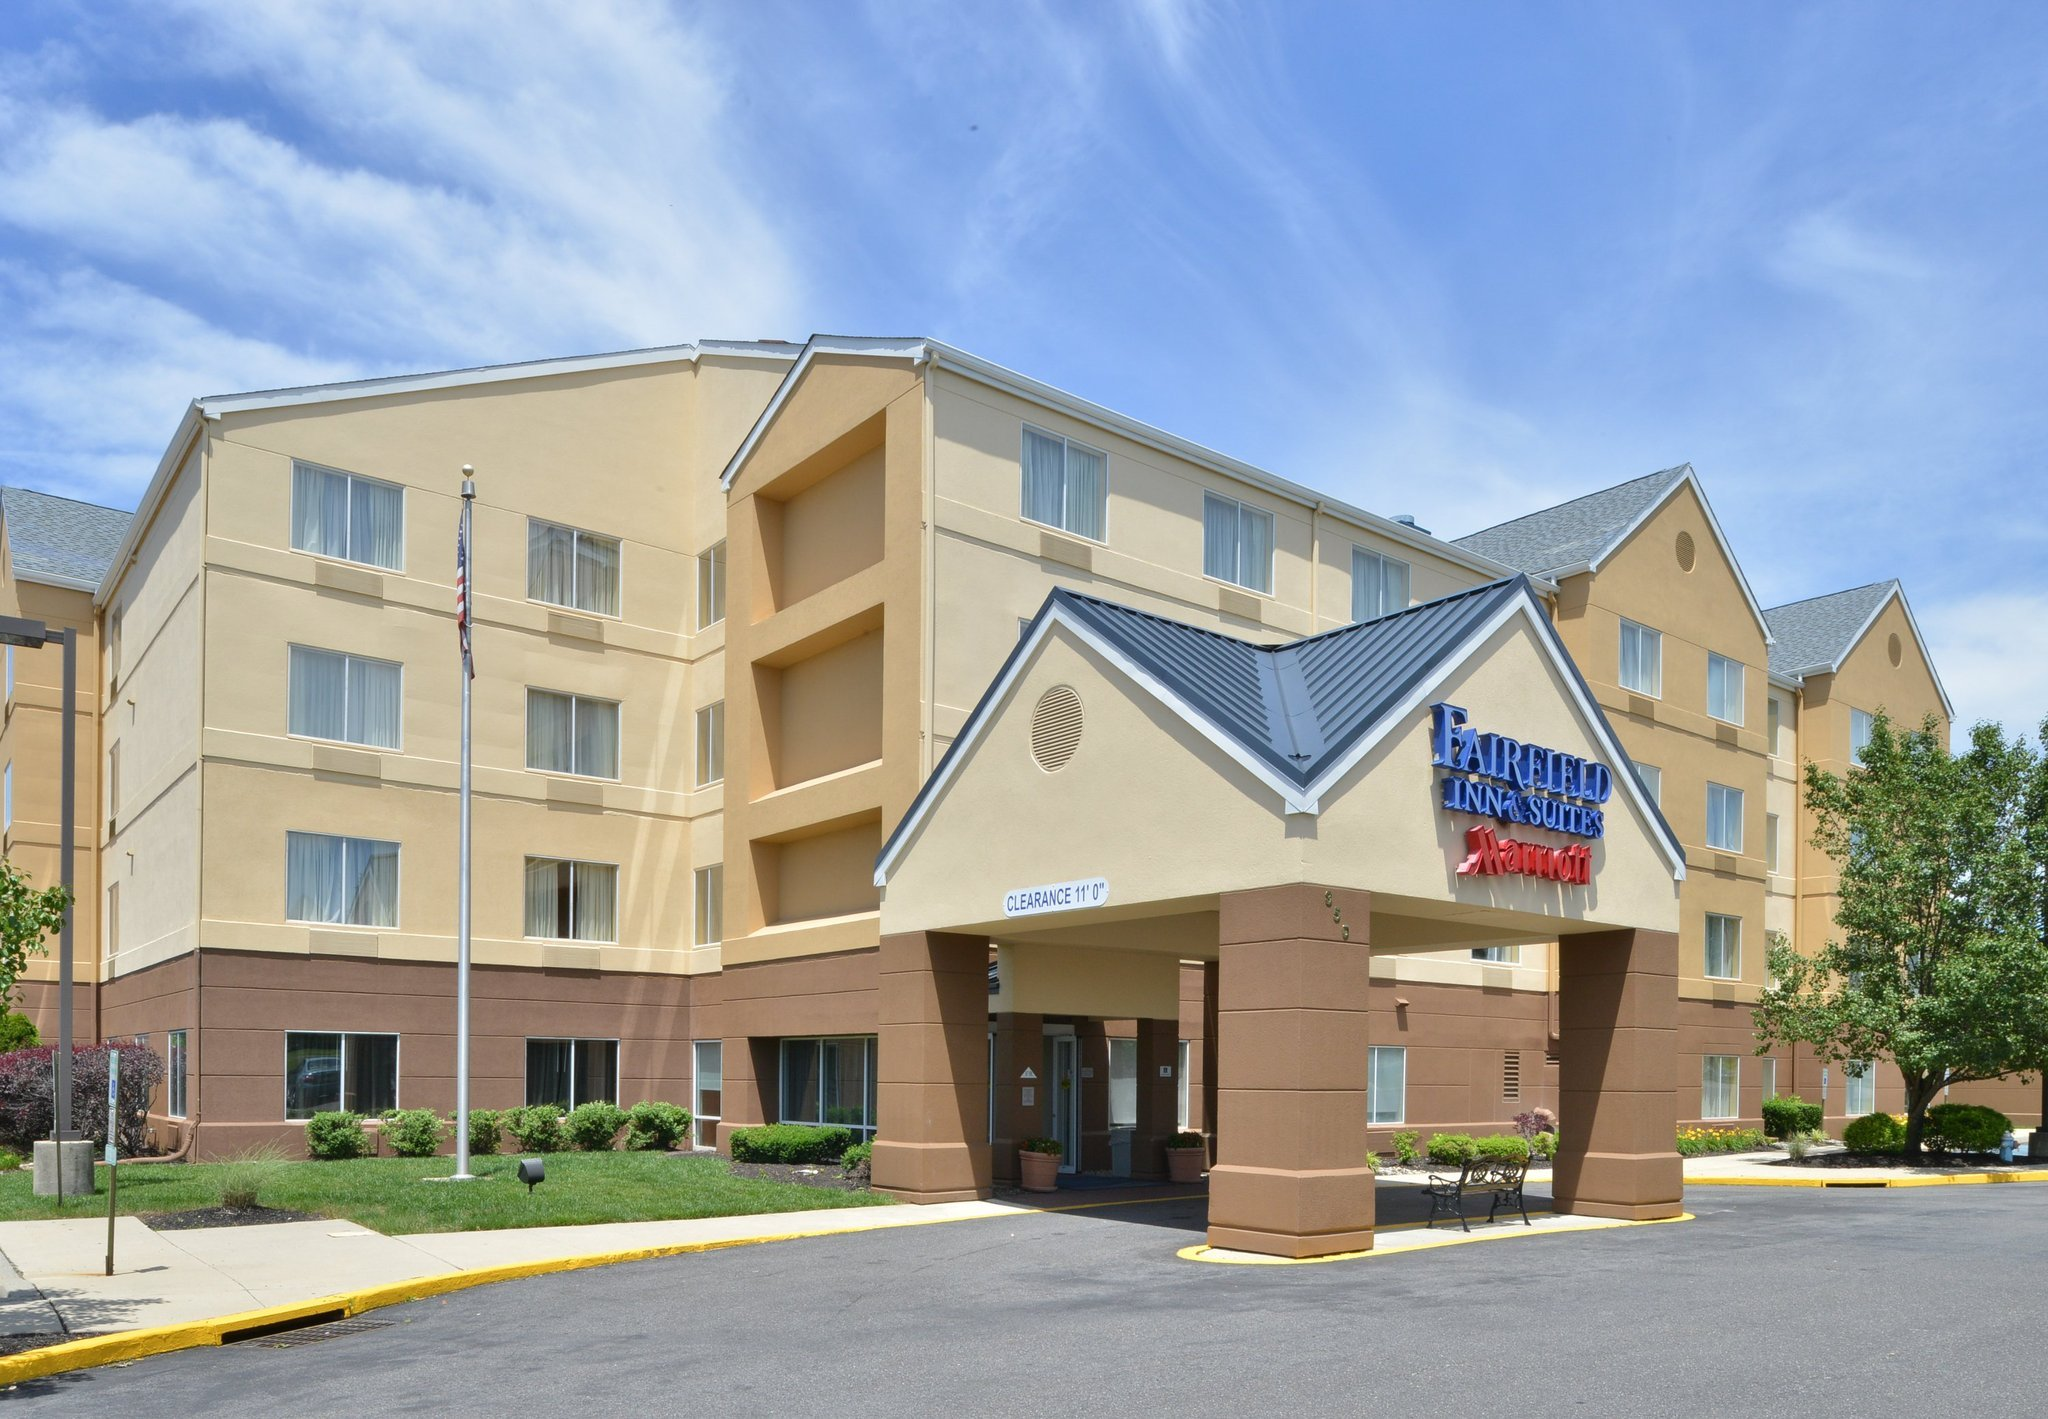 Fairfield Inn & Suites Mt. Laurel